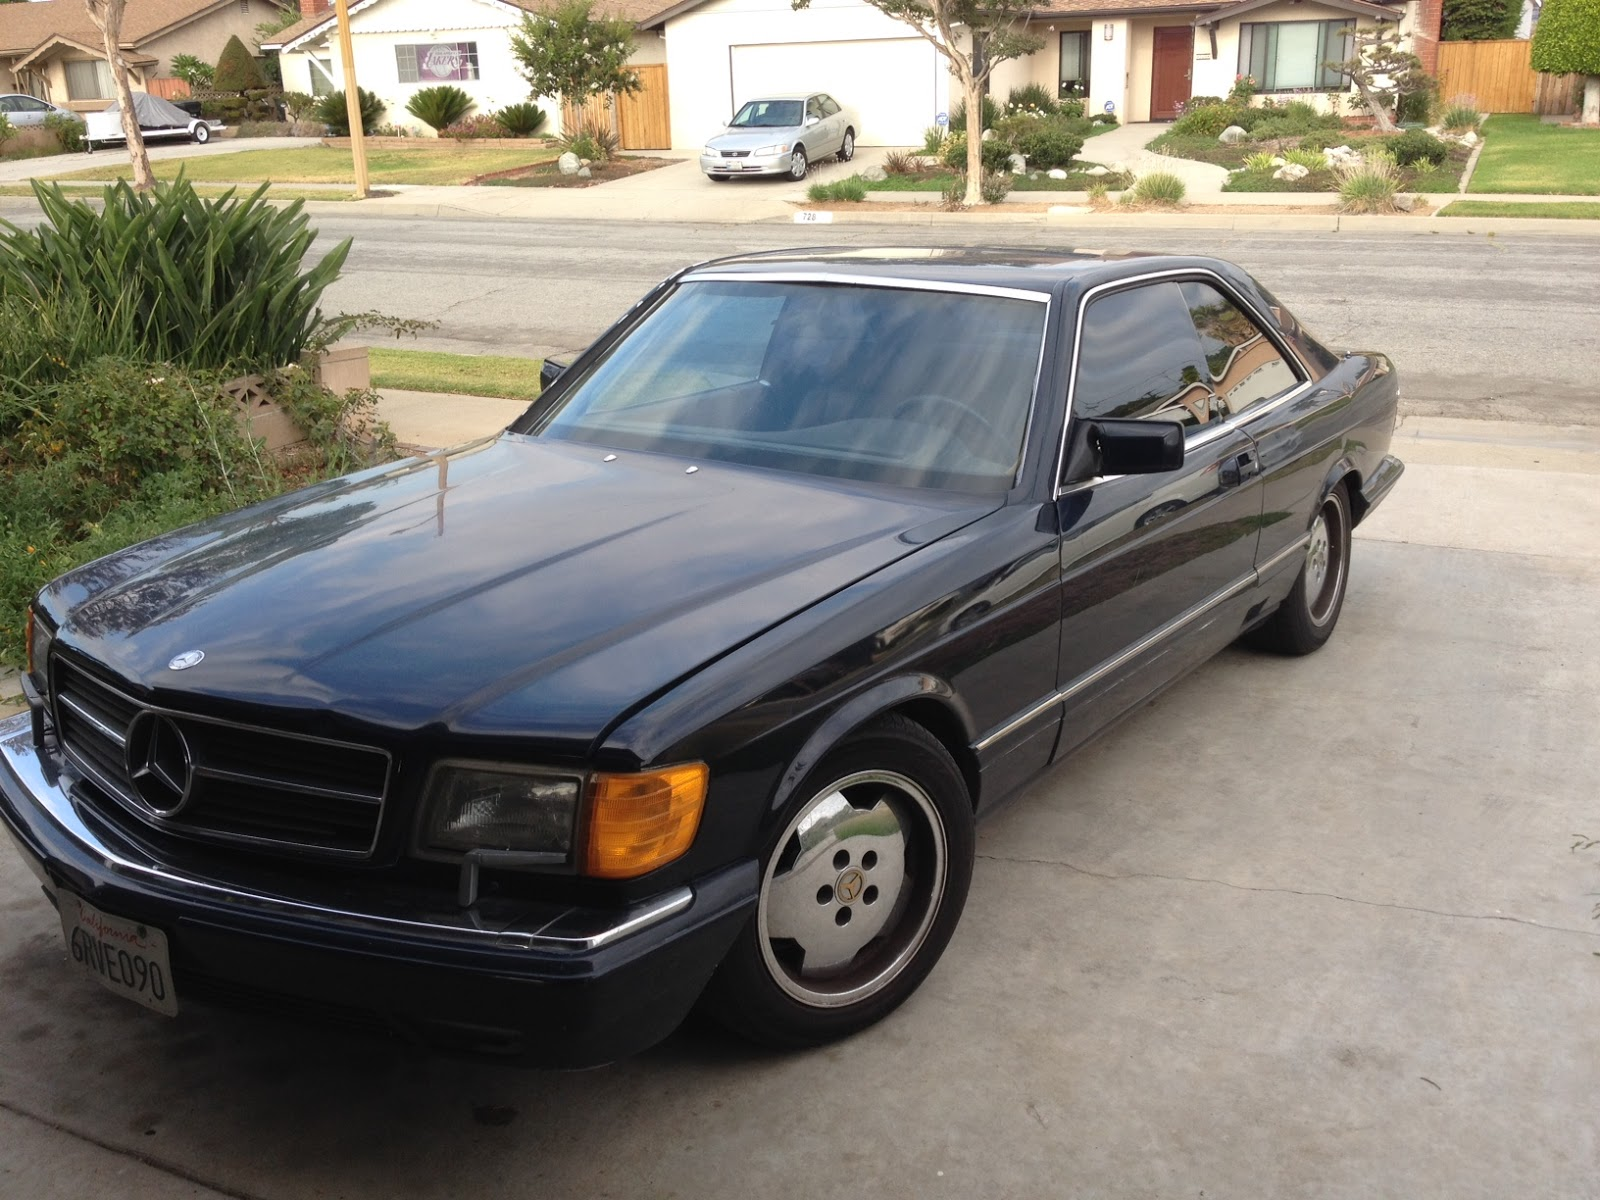 talking story ..: mercedes benz 1988 560 sec coupe $1500 german